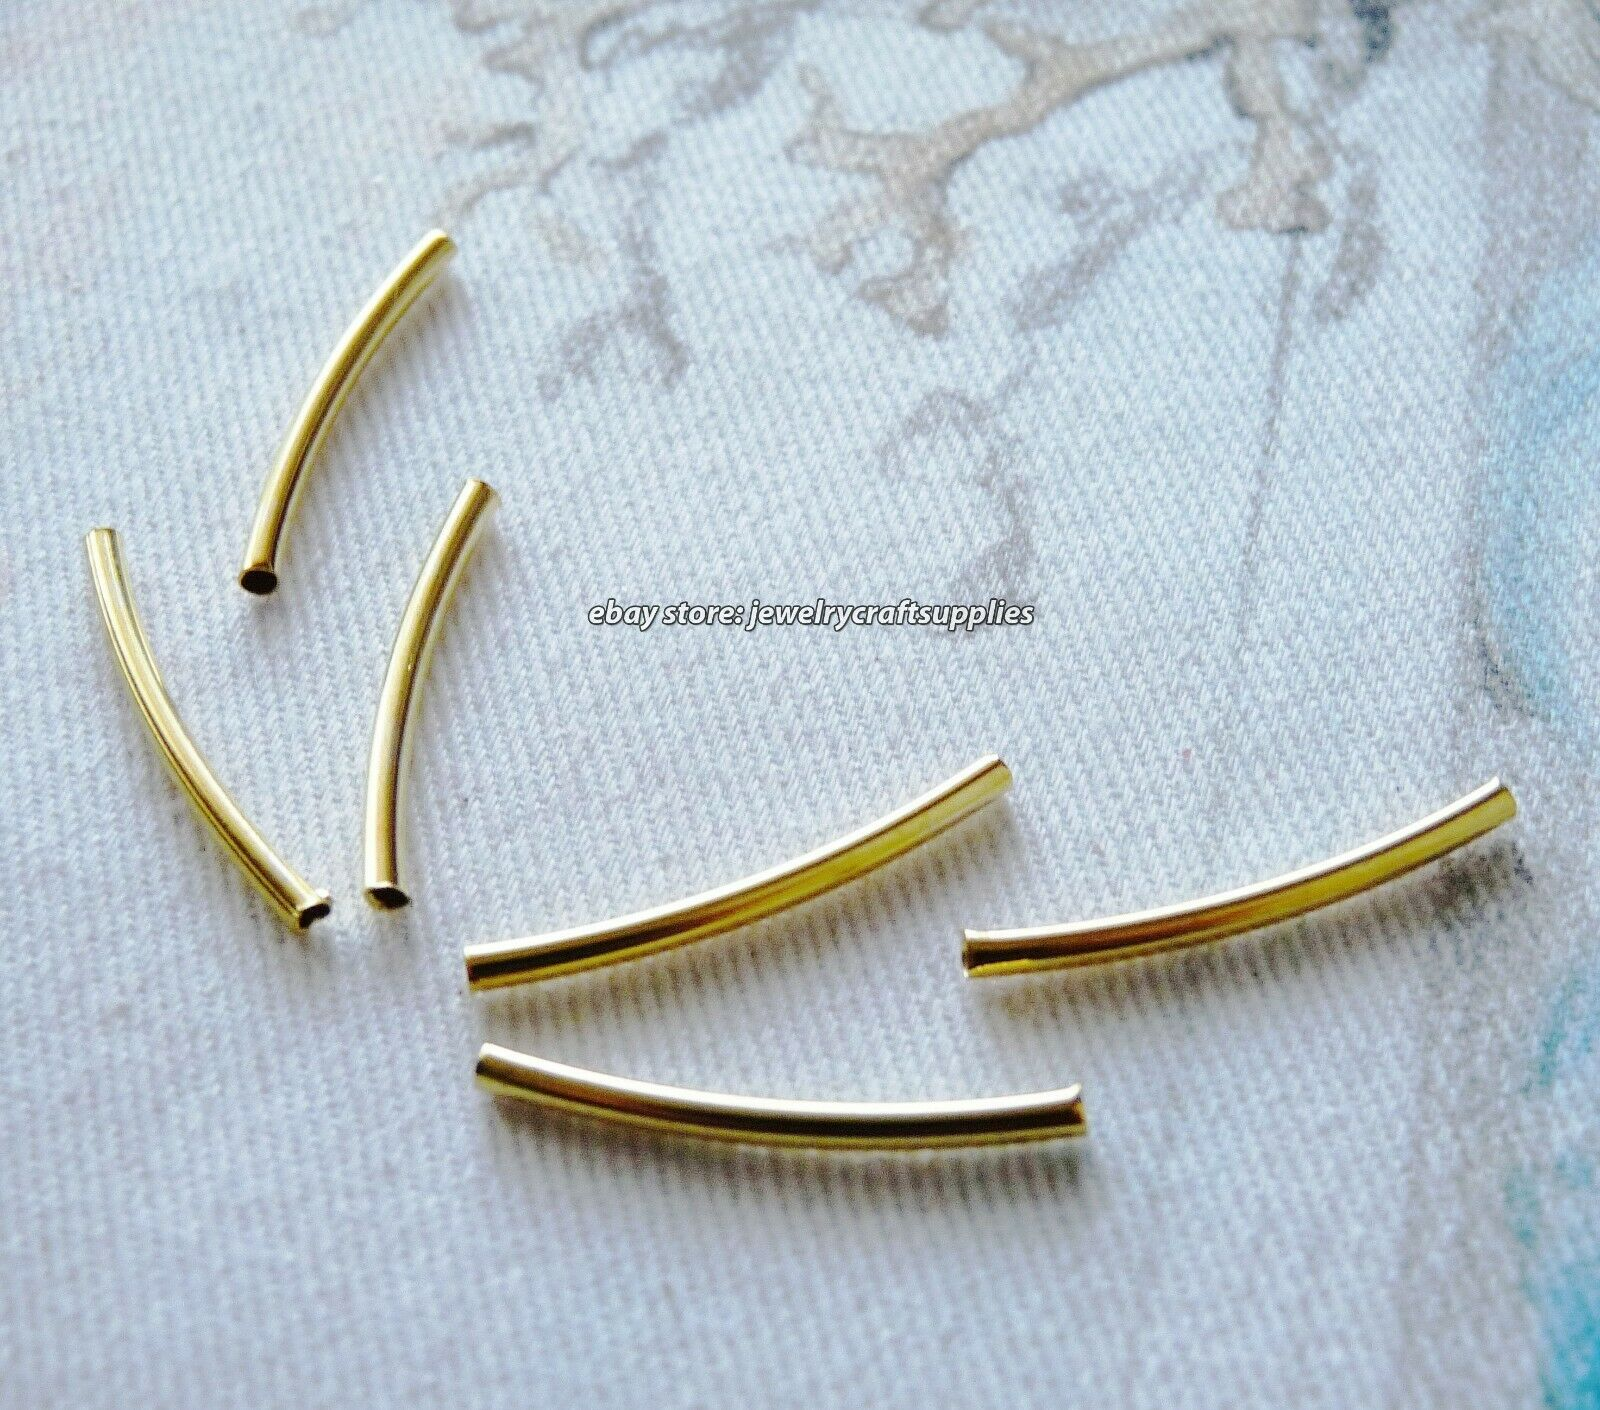 Plated Curved Tube Silver Gold Plated Elbow Noodle Spacer Loose Bead Jewelry